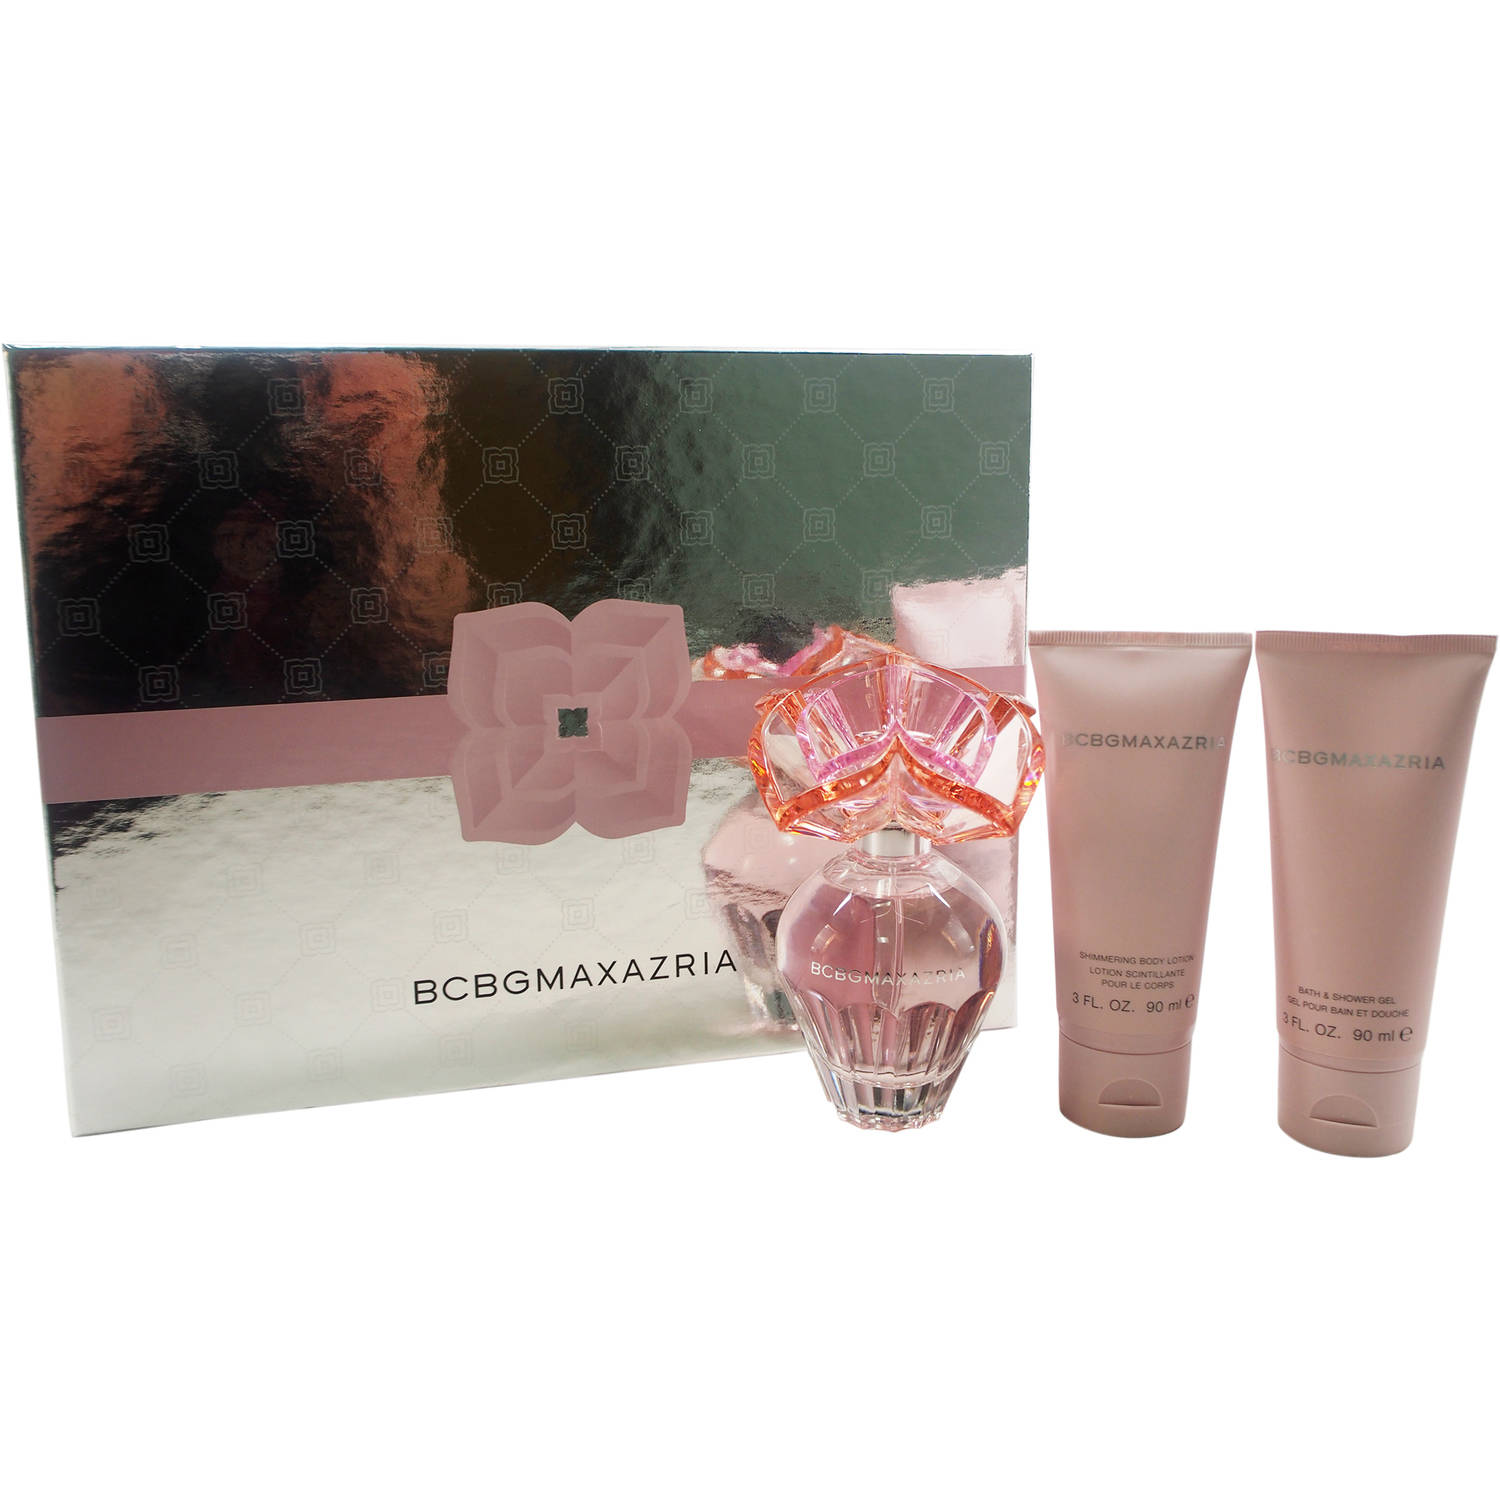 BCBG Maxazria by BCBG for Women - 3 Pc Gift Set 3.4oz EDP Spray, 3oz Shimmering Body Lotion, 3oz Bath & Shower Gel